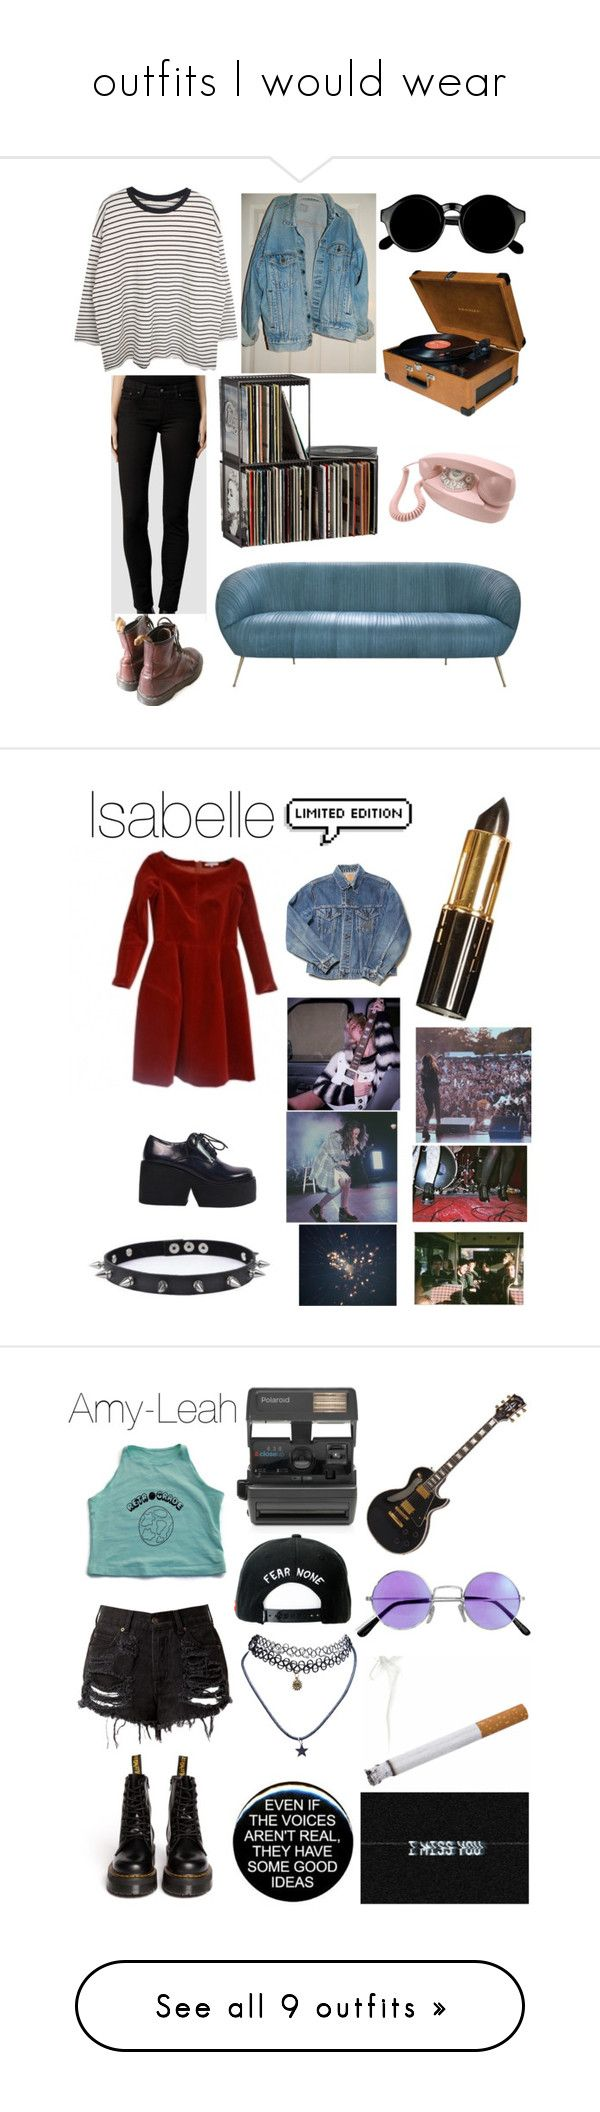 """""""outfits I would wear"""" by llamapoop ❤ liked on Polyvore featuring AllSaints, Levi's, CB2, Retrò, Crosley, Trend Cool, Brandy Melville, Dr. Martens, Impossible and Trukfit"""